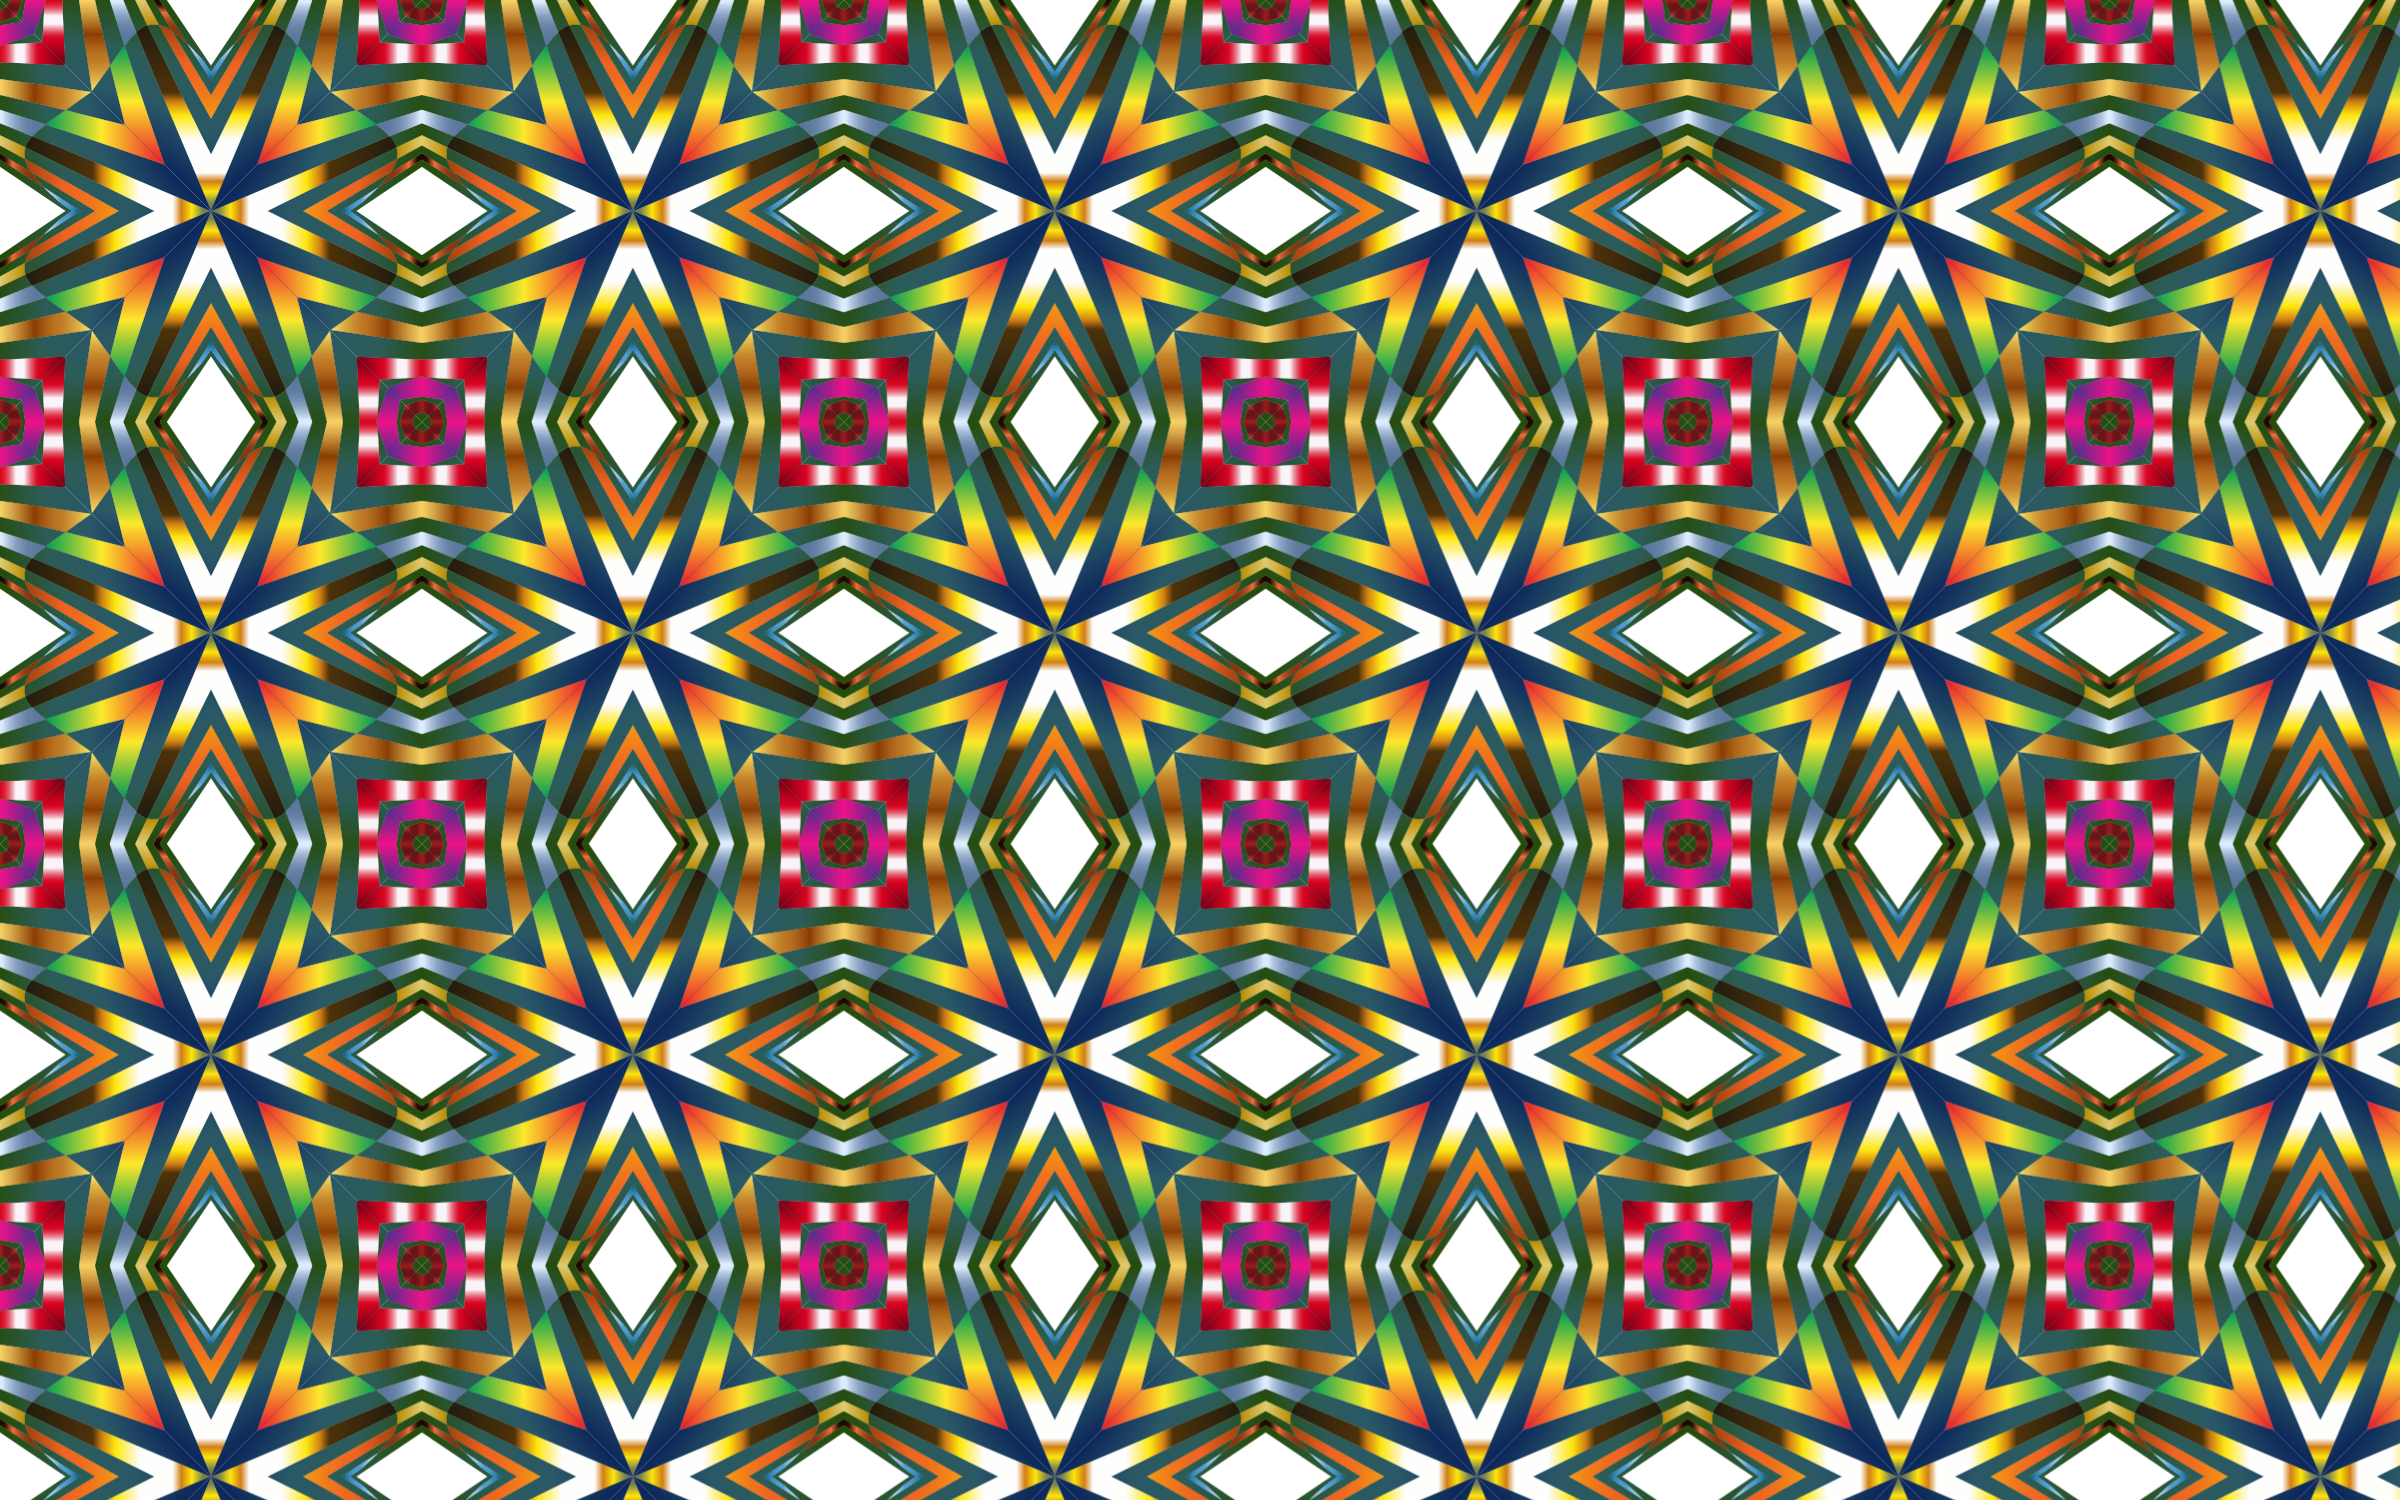 Seamless Pattern 95 by GDJ